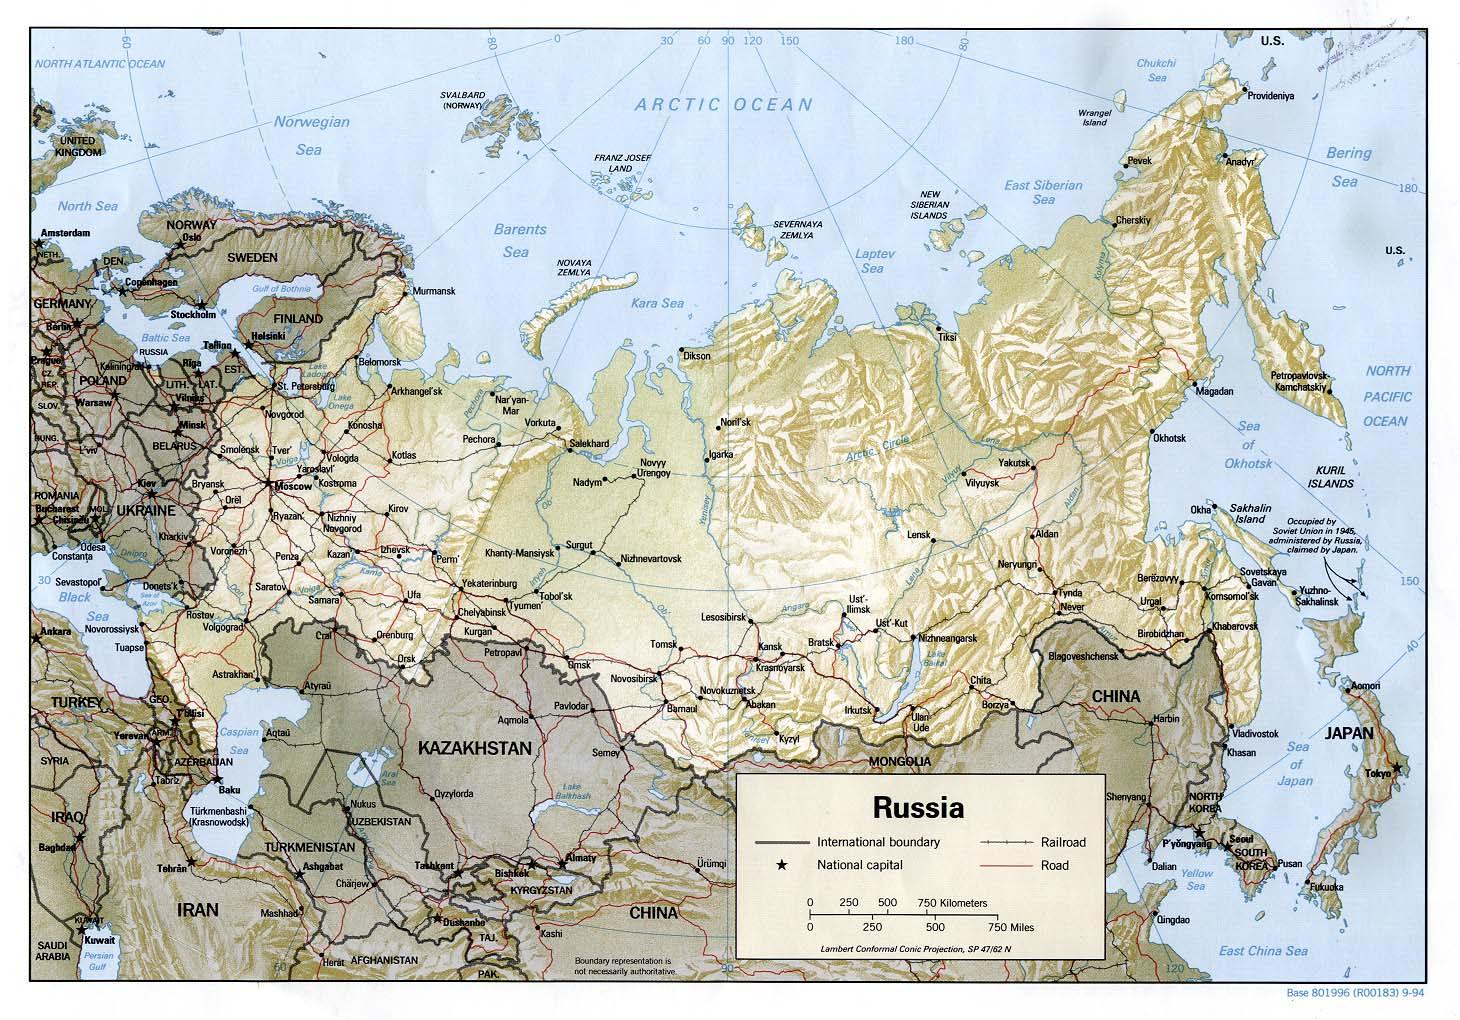 Russia and former soviet republics maps on other web sites